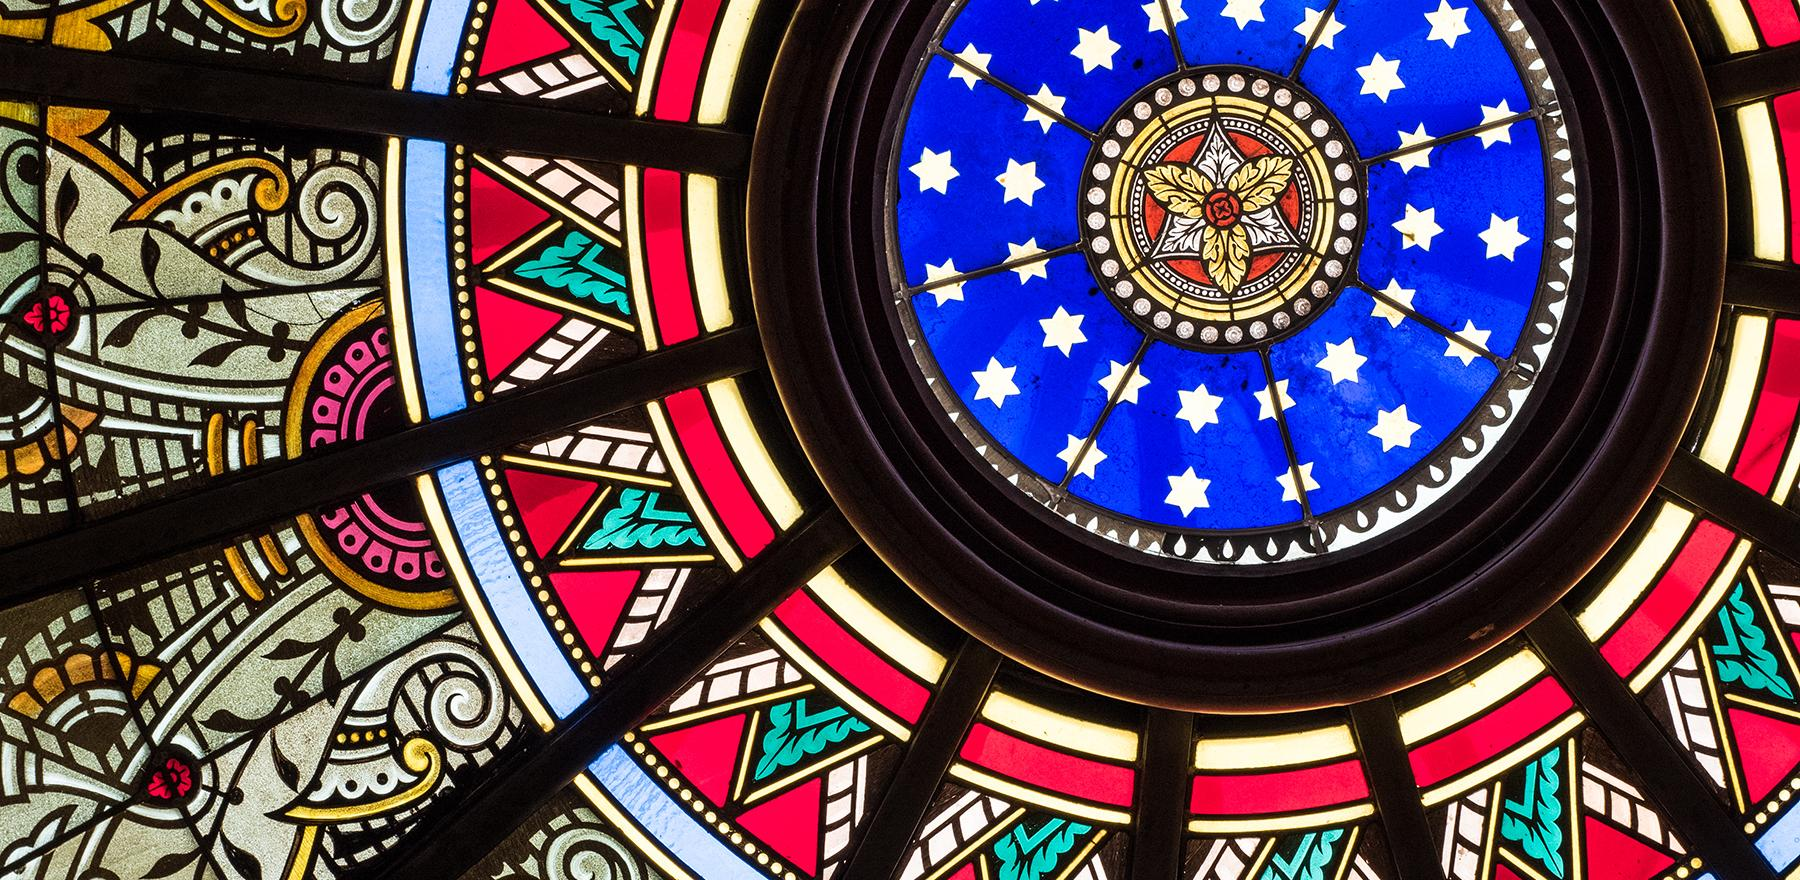 The stained glass rotunda in Linderman Library at Lehigh University